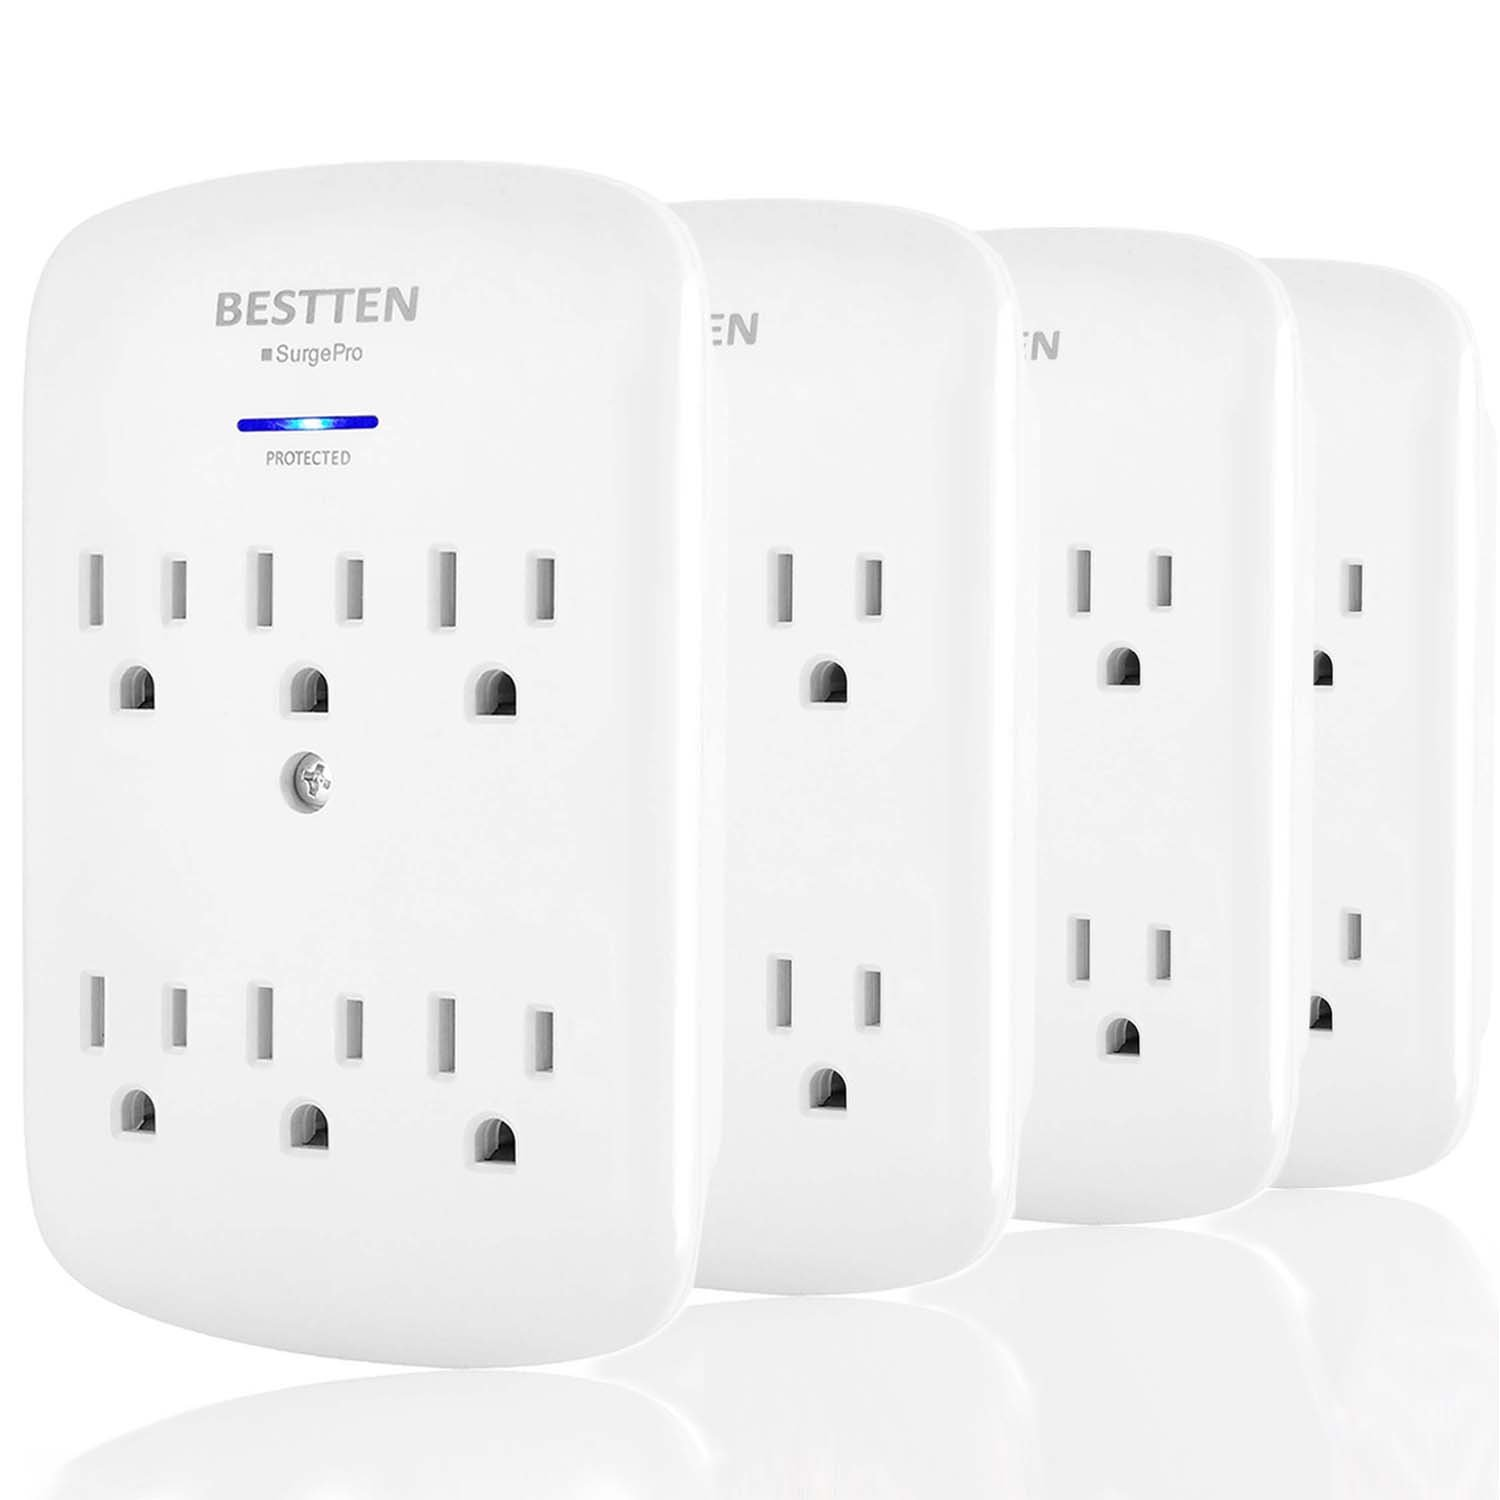 Multi-Plug Extended Multipliers ETL Certified Wall Tap Adapter Splitter BESTTEN 5-Outlet Surge Protector with 2 USB Charging Ports White USW-2U5A-0A